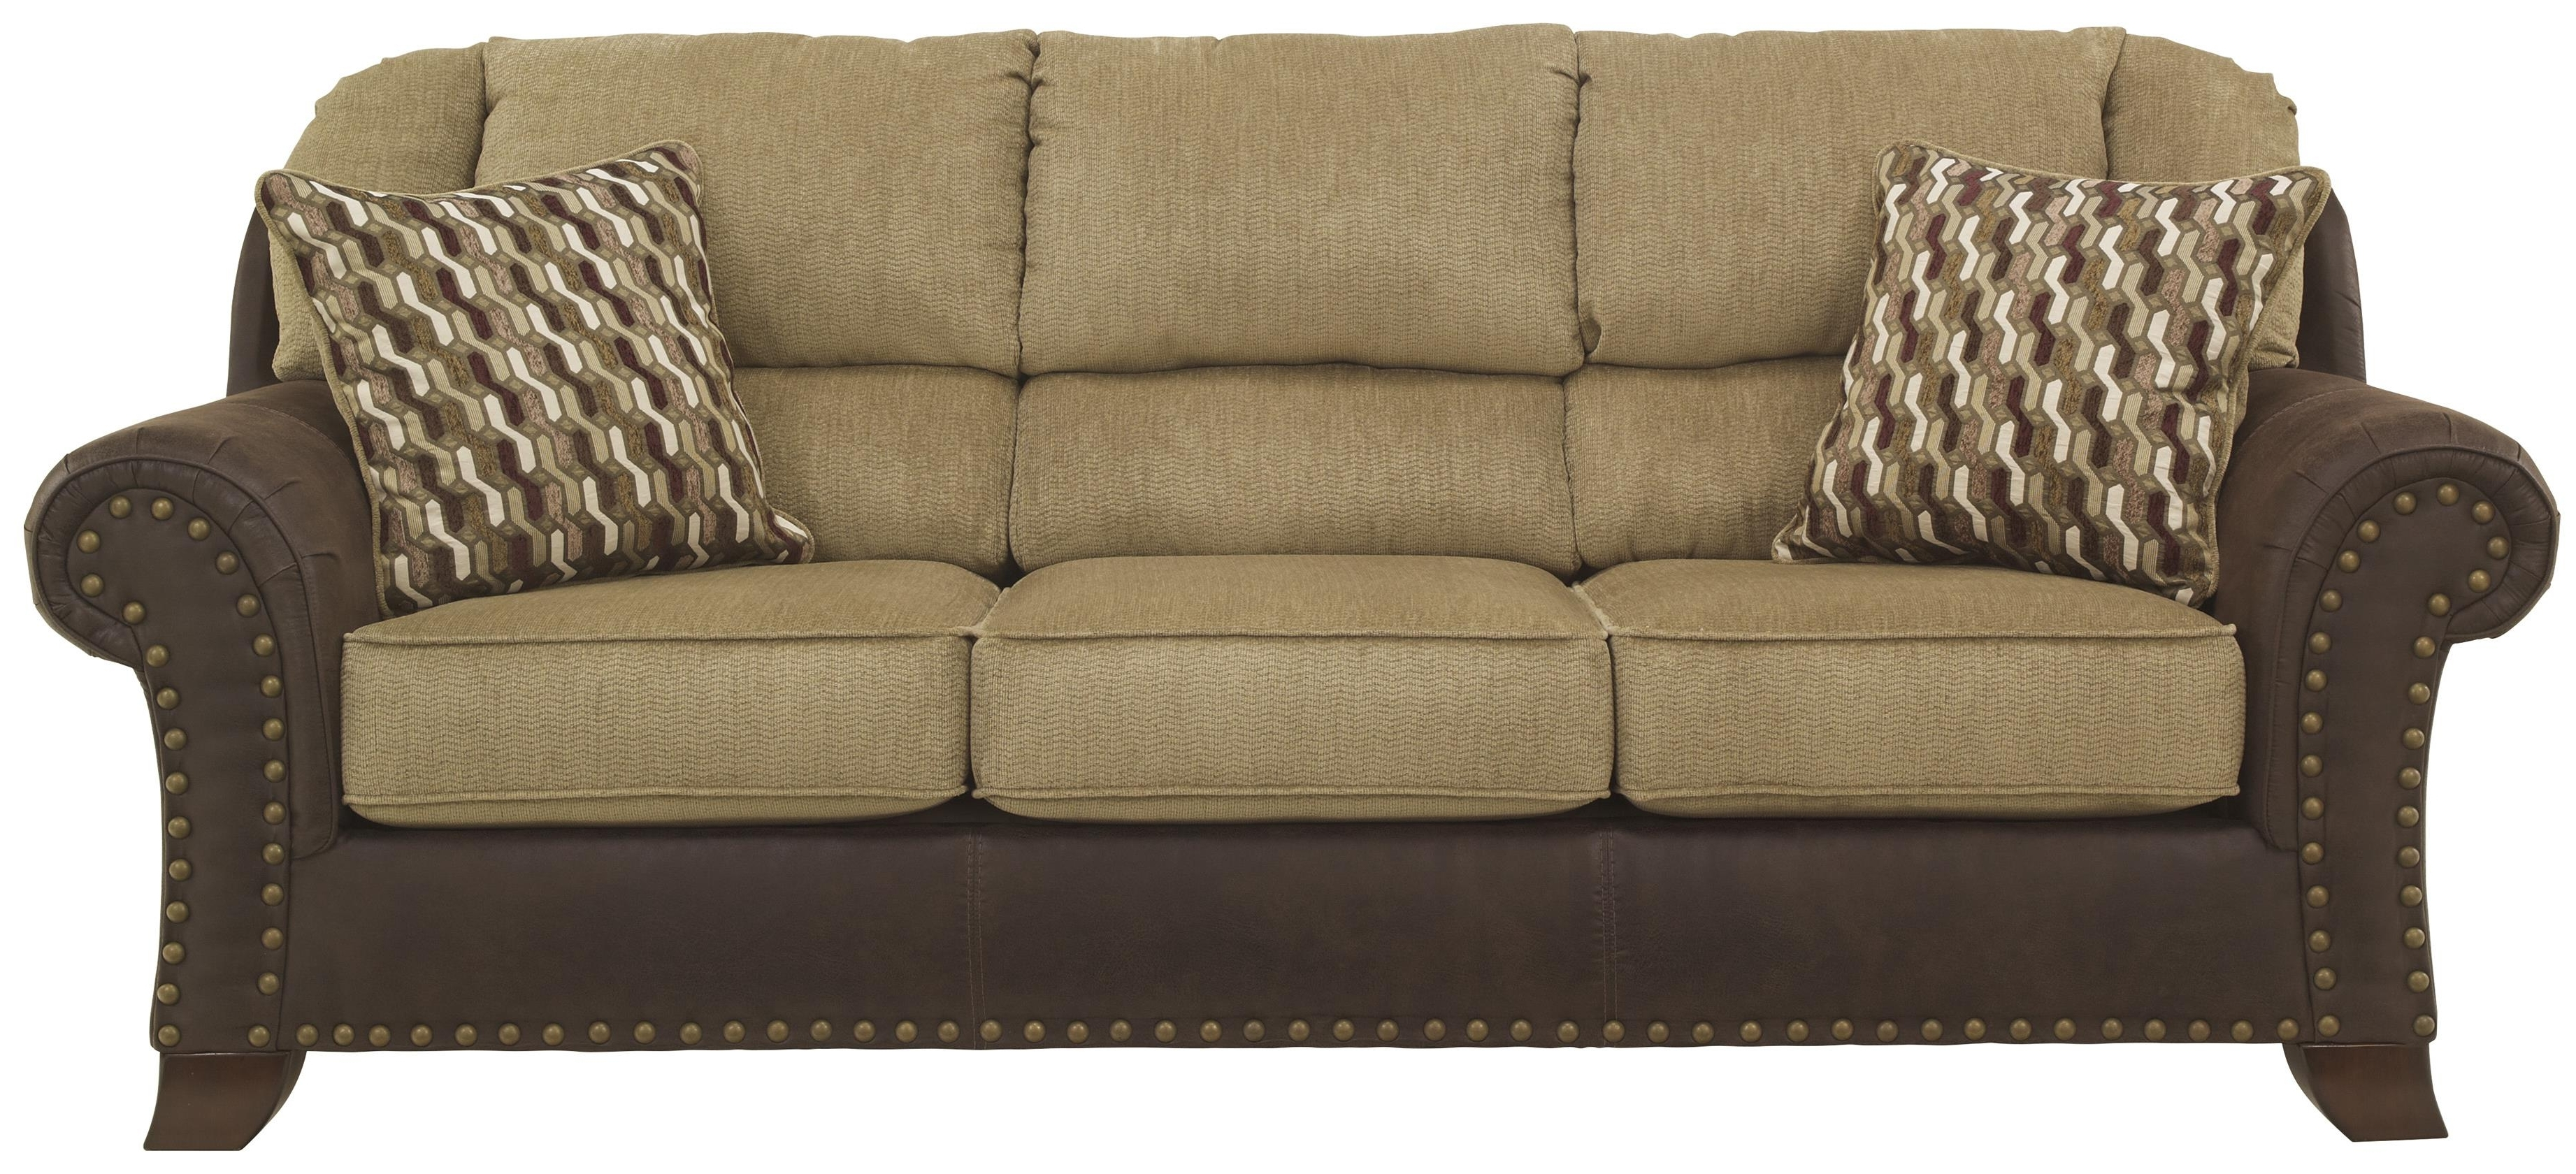 Two Tone Sofas Regarding Well Liked Two Tone Sofa With Chenille Fabric/faux Leather Upholstery (View 10 of 20)